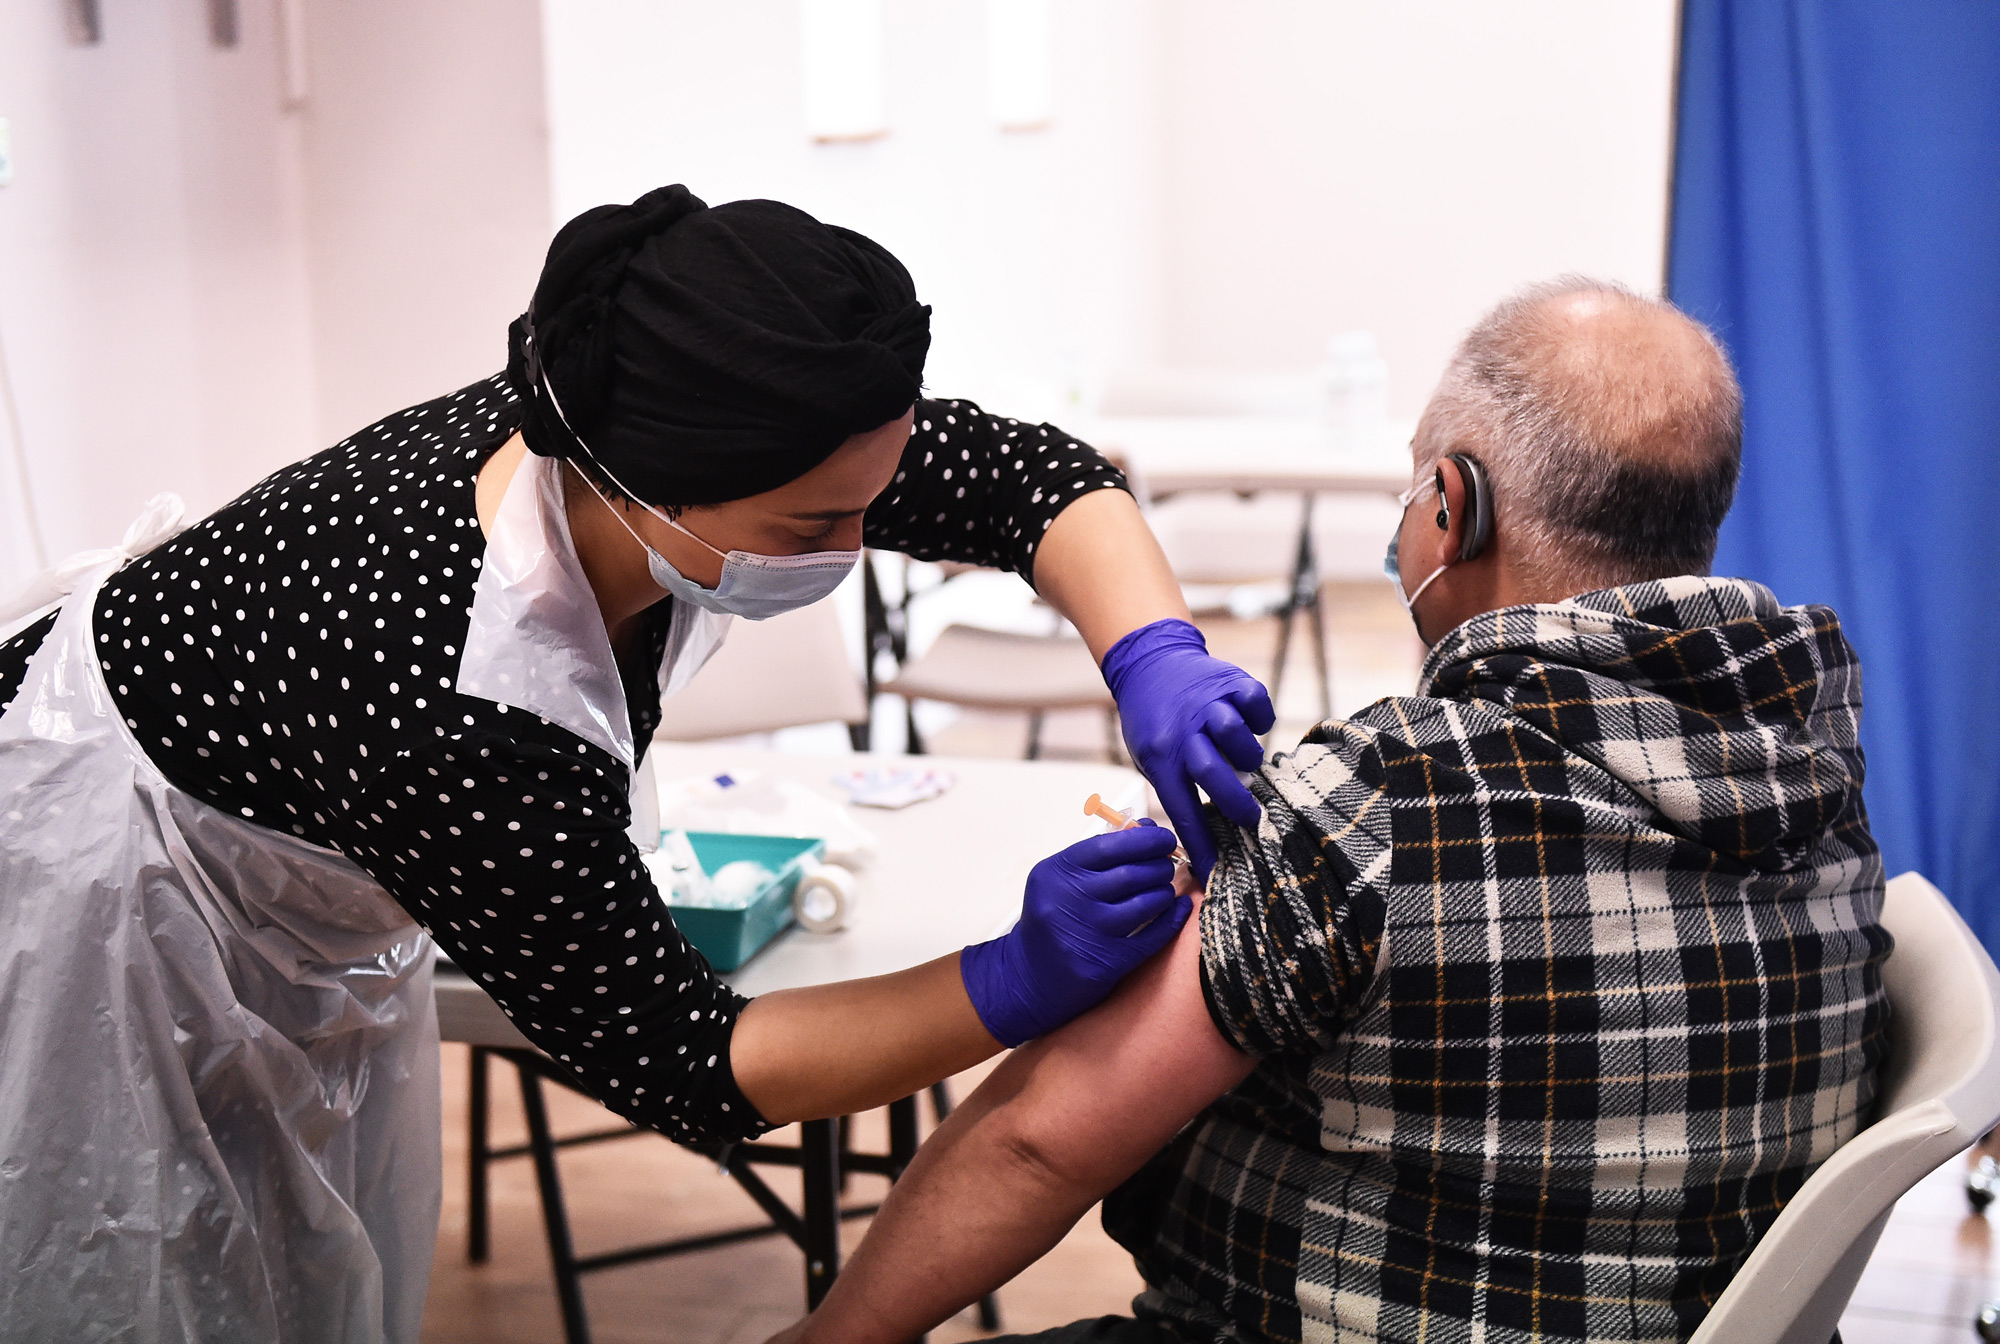 Sonia Akbar prepares to administers the AstraZeneca/Oxford Covid-19 vaccine to a patient at a pop up vaccination centre at the Pakistani Community Centre on April 9 in Derby, England.